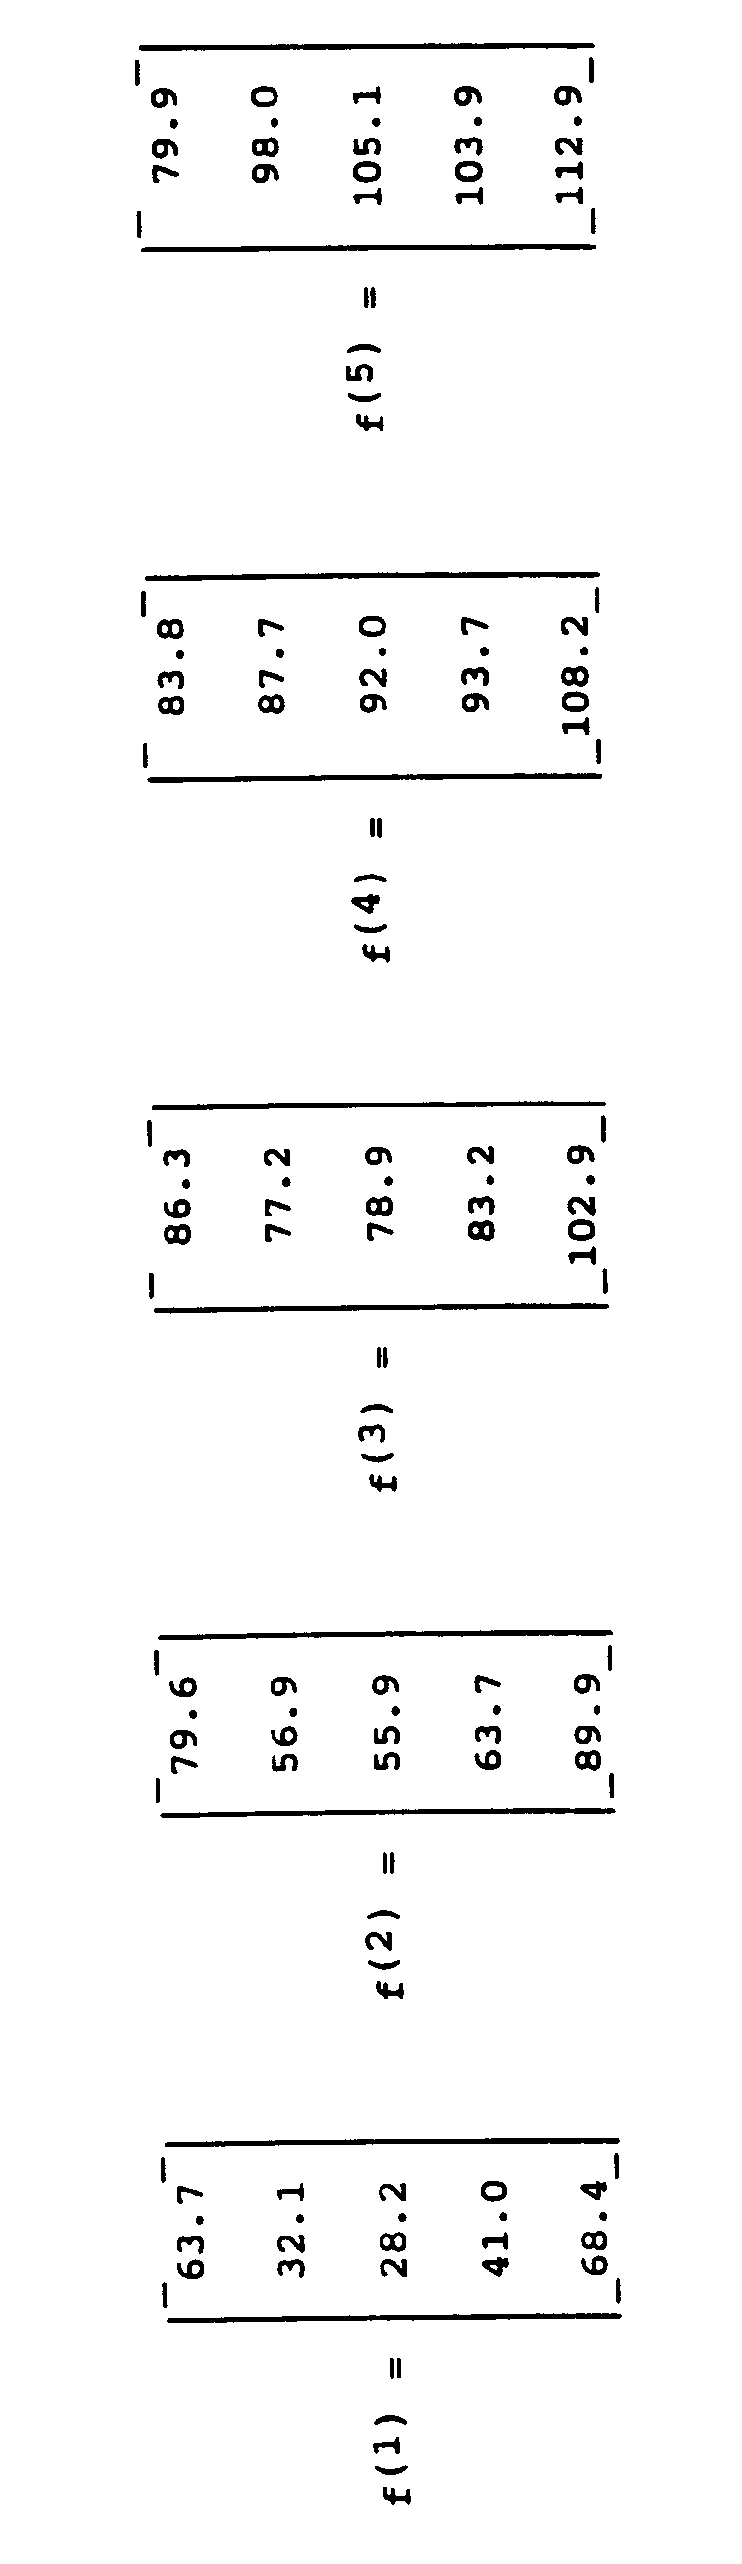 Ep0545641a2 Determining Pneumatic Tire Pressure And Or Vehicle Temperature Load Force 038 Other Sensors Figure Imgb0008